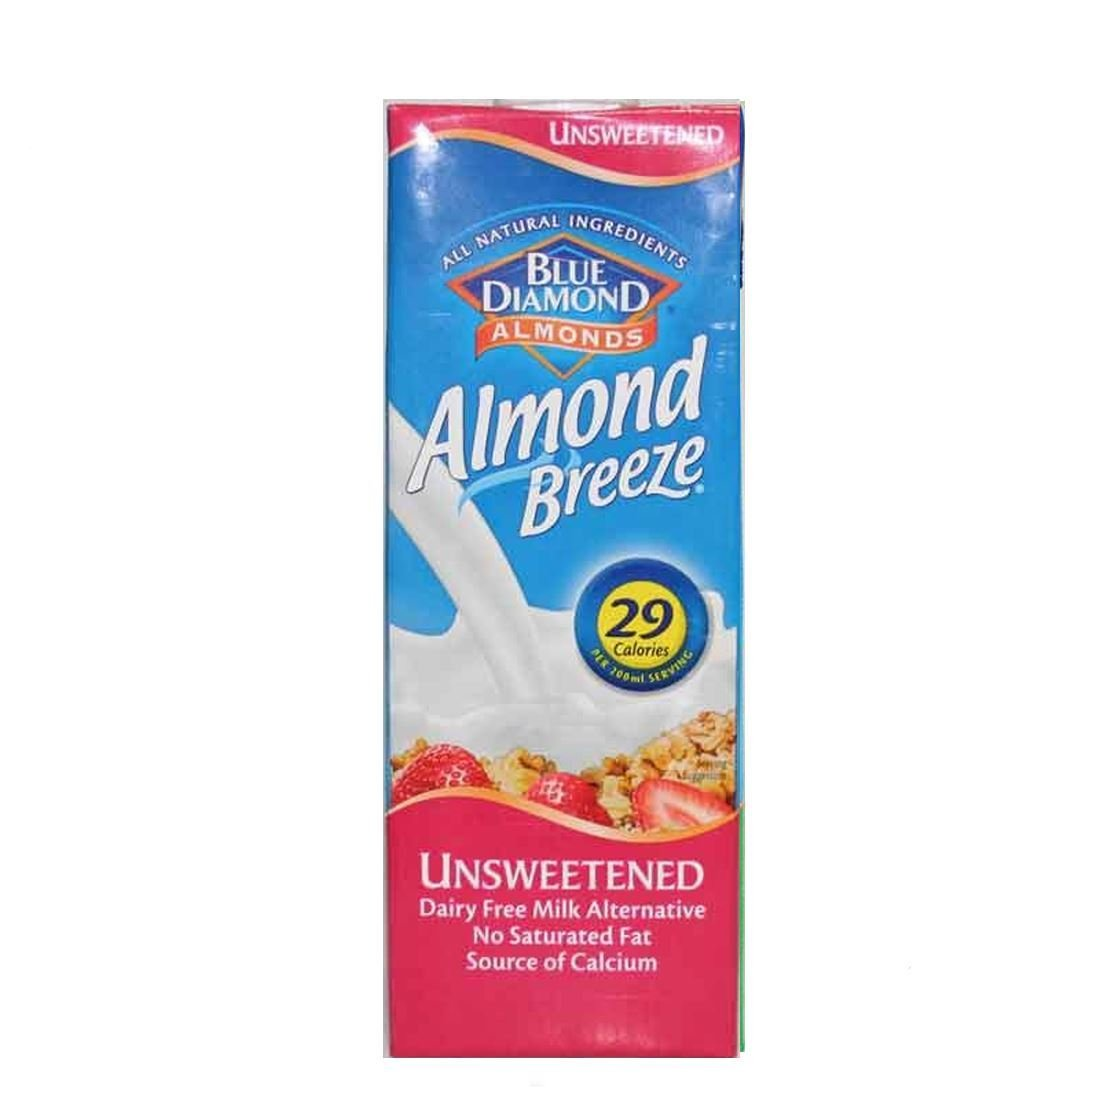 Blue Diamond | Almond Breeze - Unsweetened | 8 x 1L: Amazon.es: Alimentación y bebidas